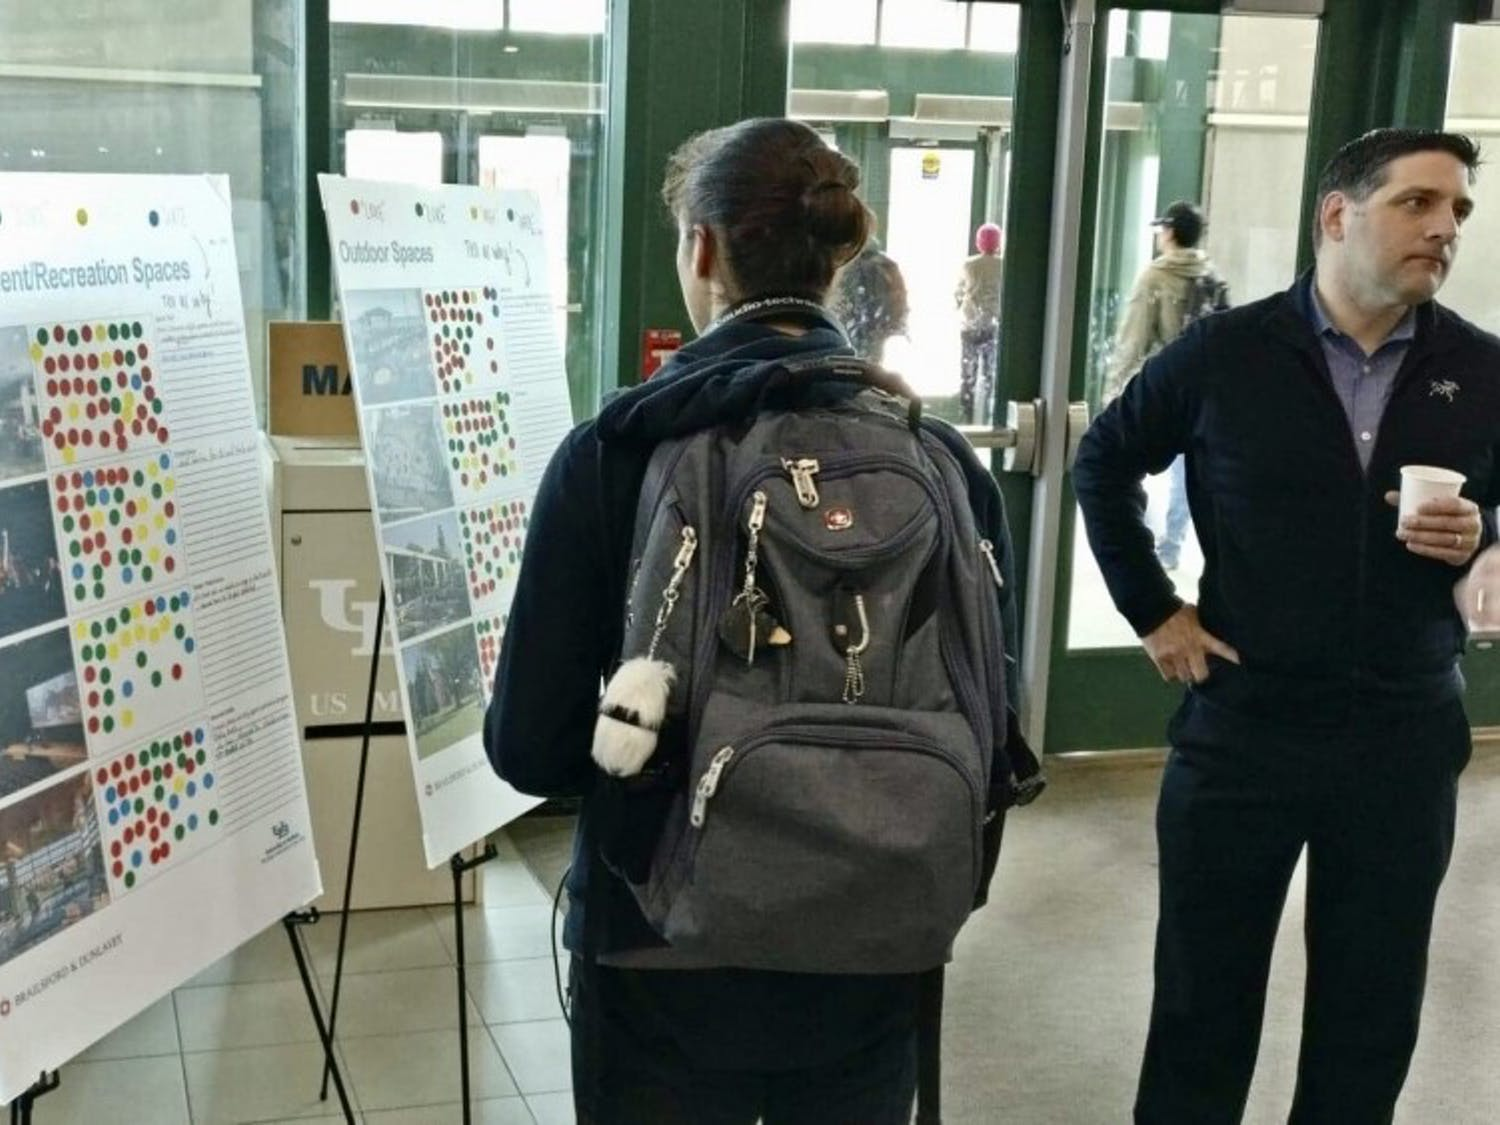 Students and faculty discuss ideas with contractors over the future plans for the Student Union. UB held an event early Wednesday to get feedback on ideas for the future renovations of the SU.